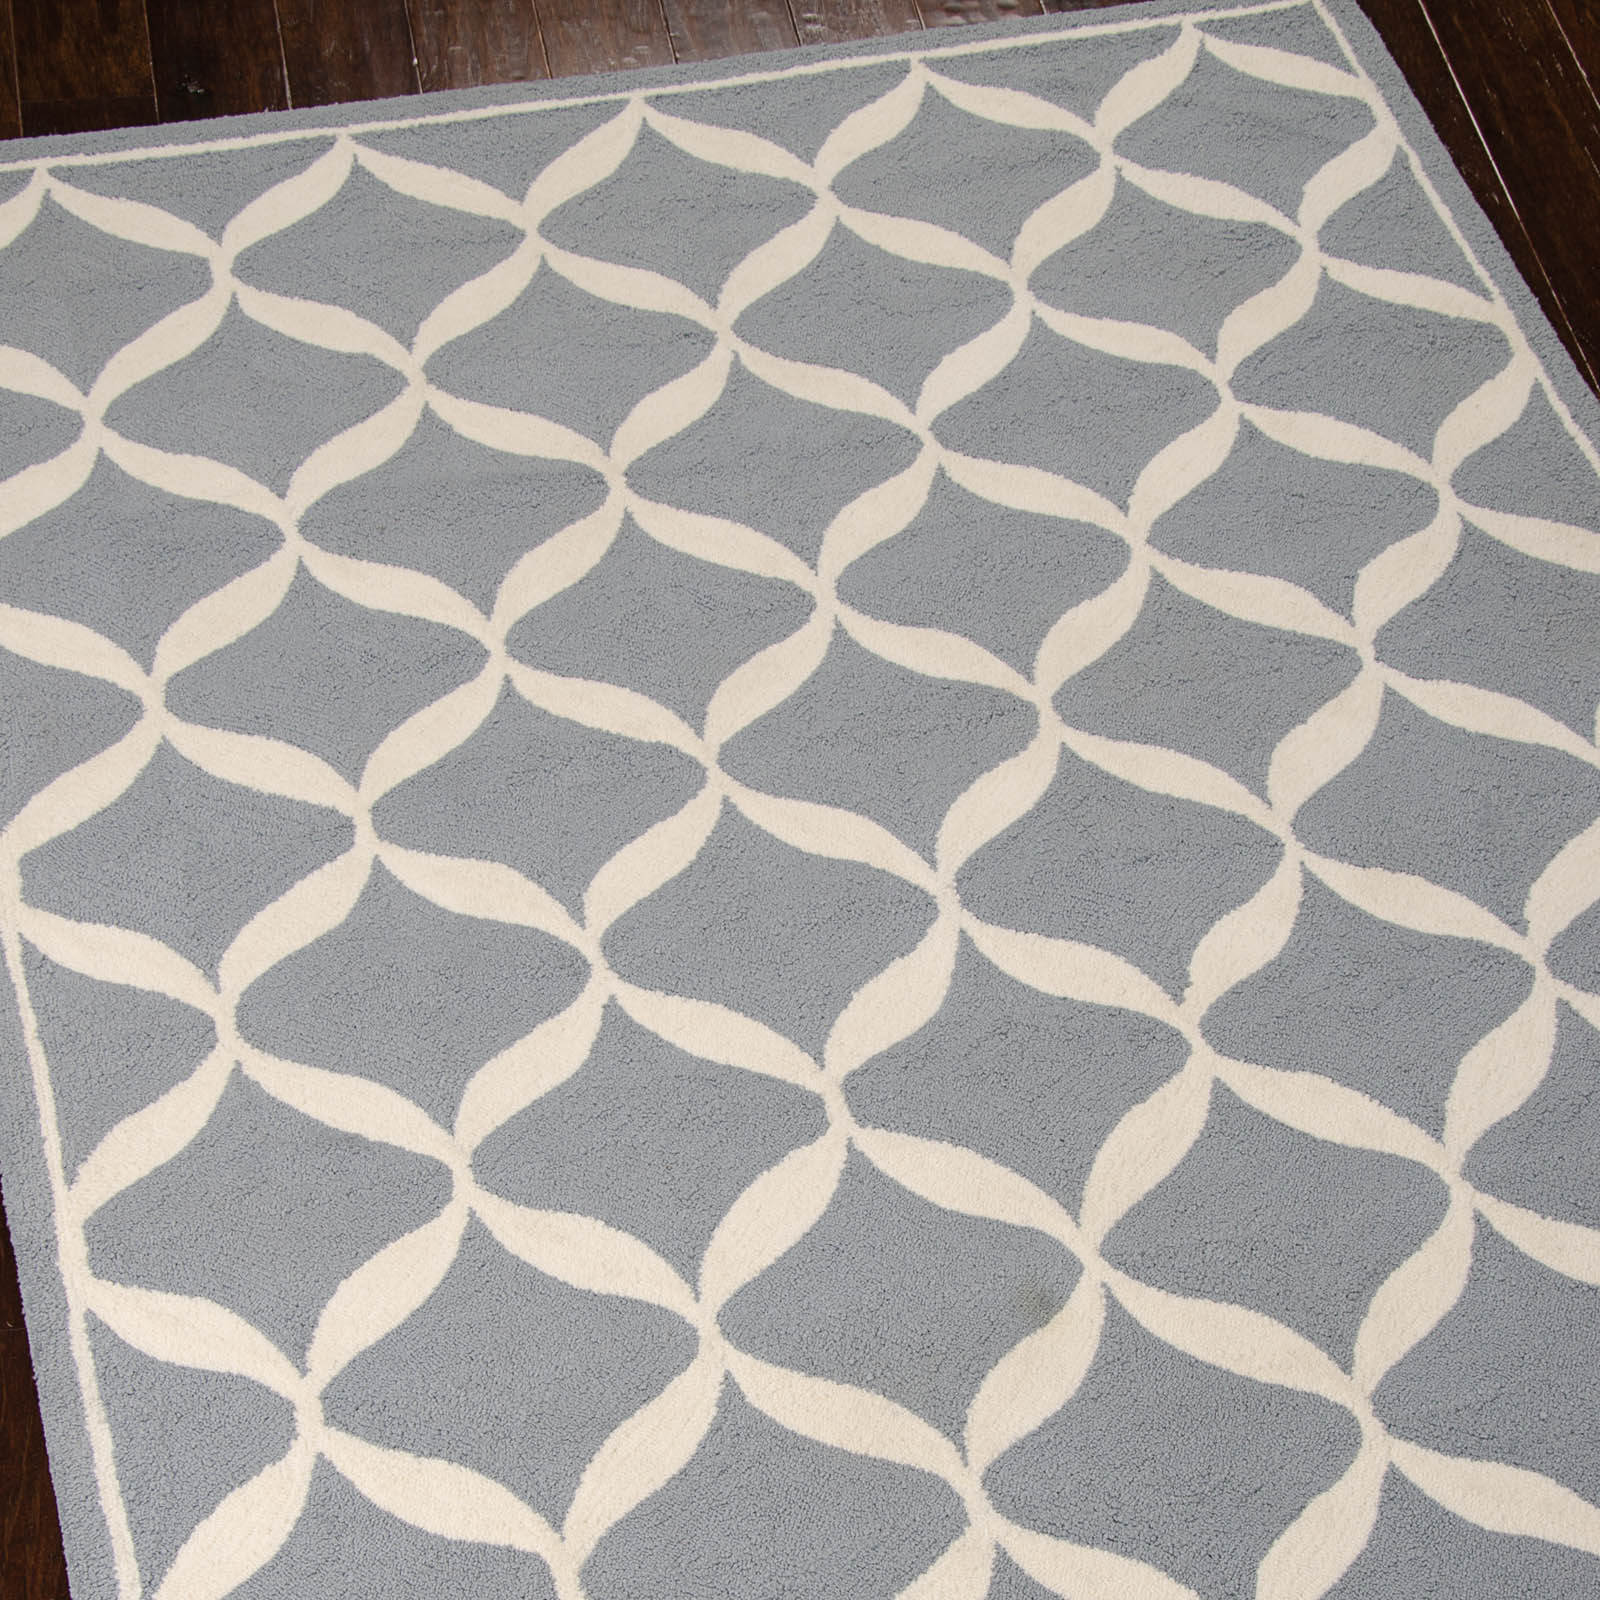 Decor Rugs DER06 by Nourison in Slate and White